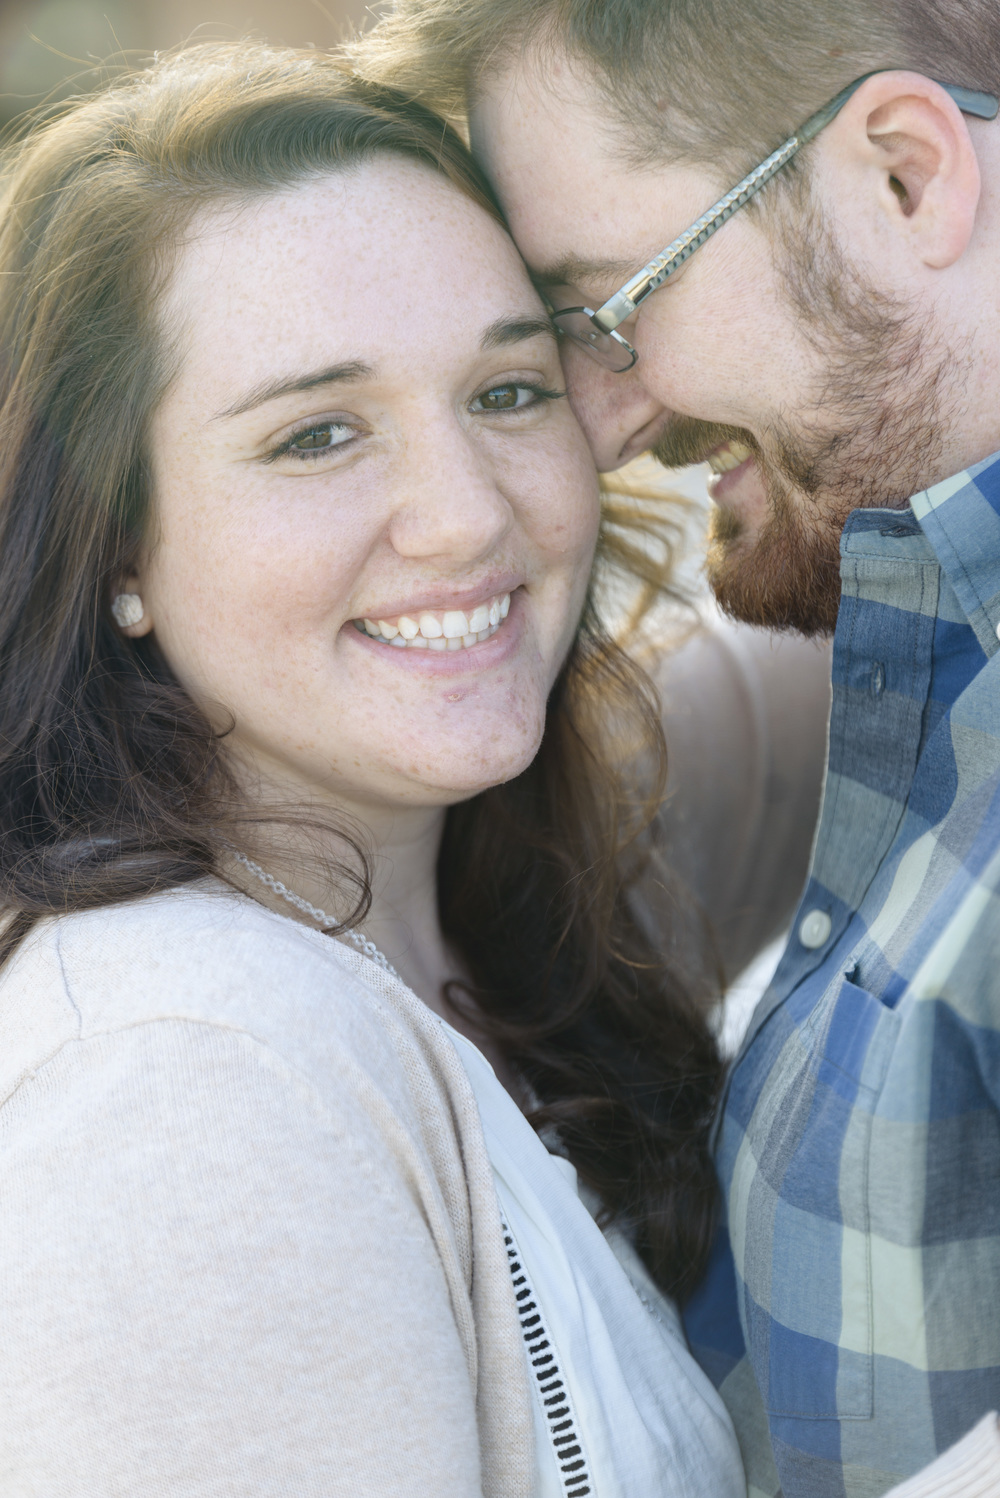 downtown_bookstore_engagement_session_lynchburg_va030.jpg